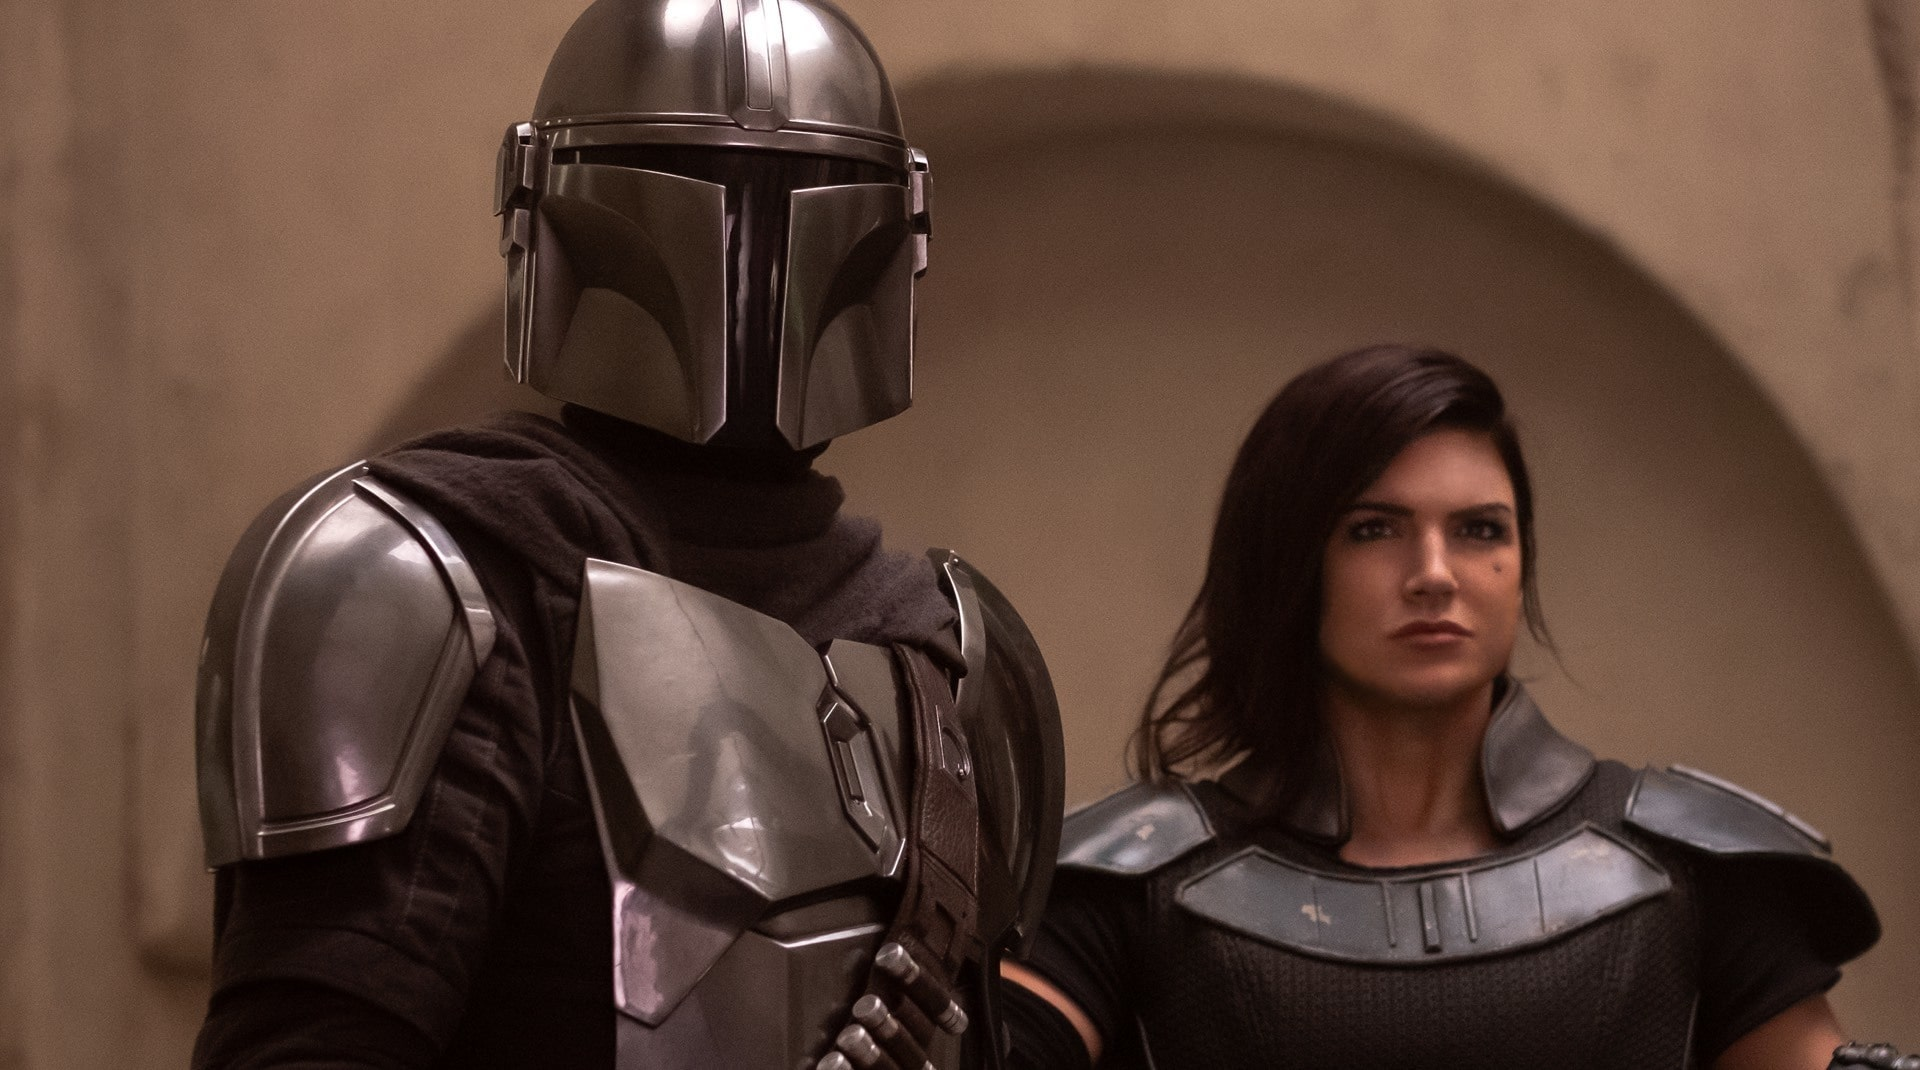 A still from The Mandalorian